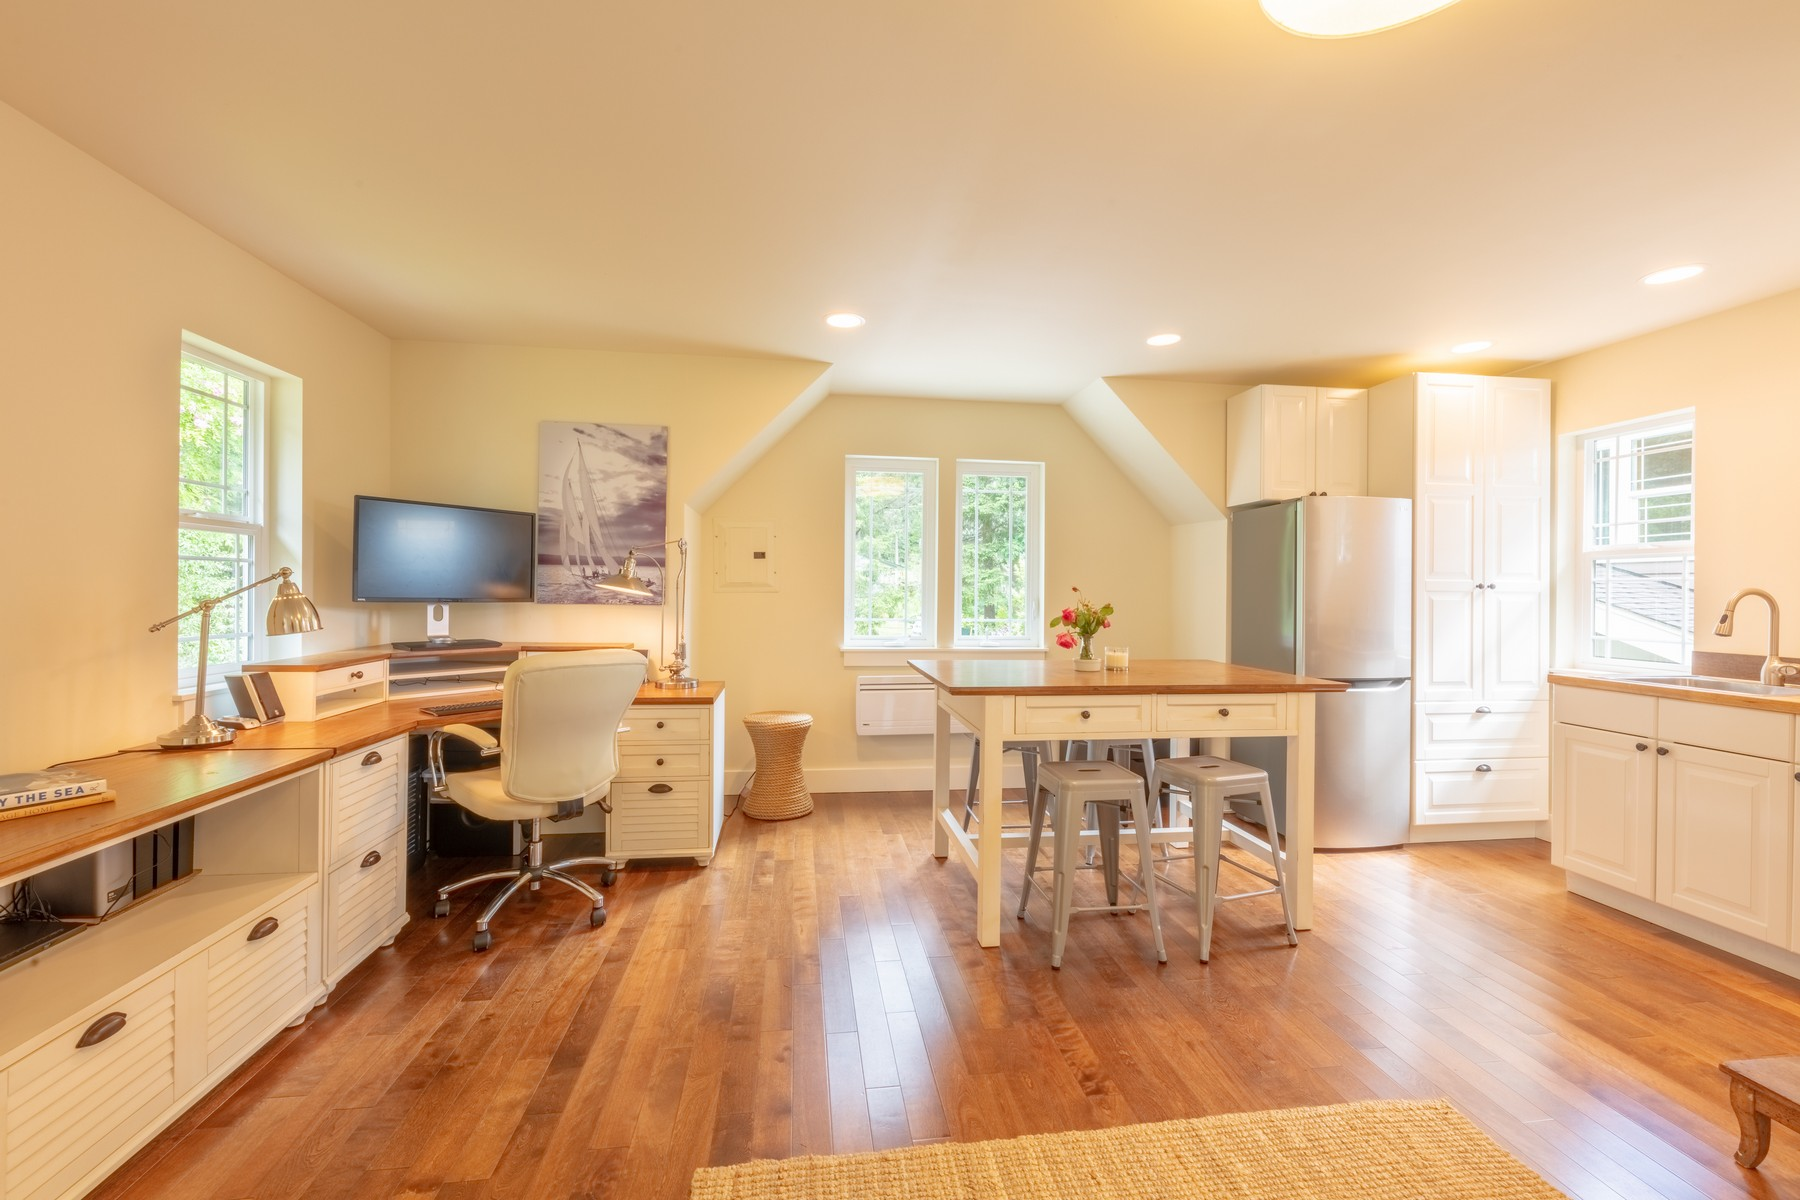 Over  the  garage  is  a  separate  450  SF  office/studio  with  a  small  kitchen,  second  refrigerator  and  oven,  and  ¾  bath.